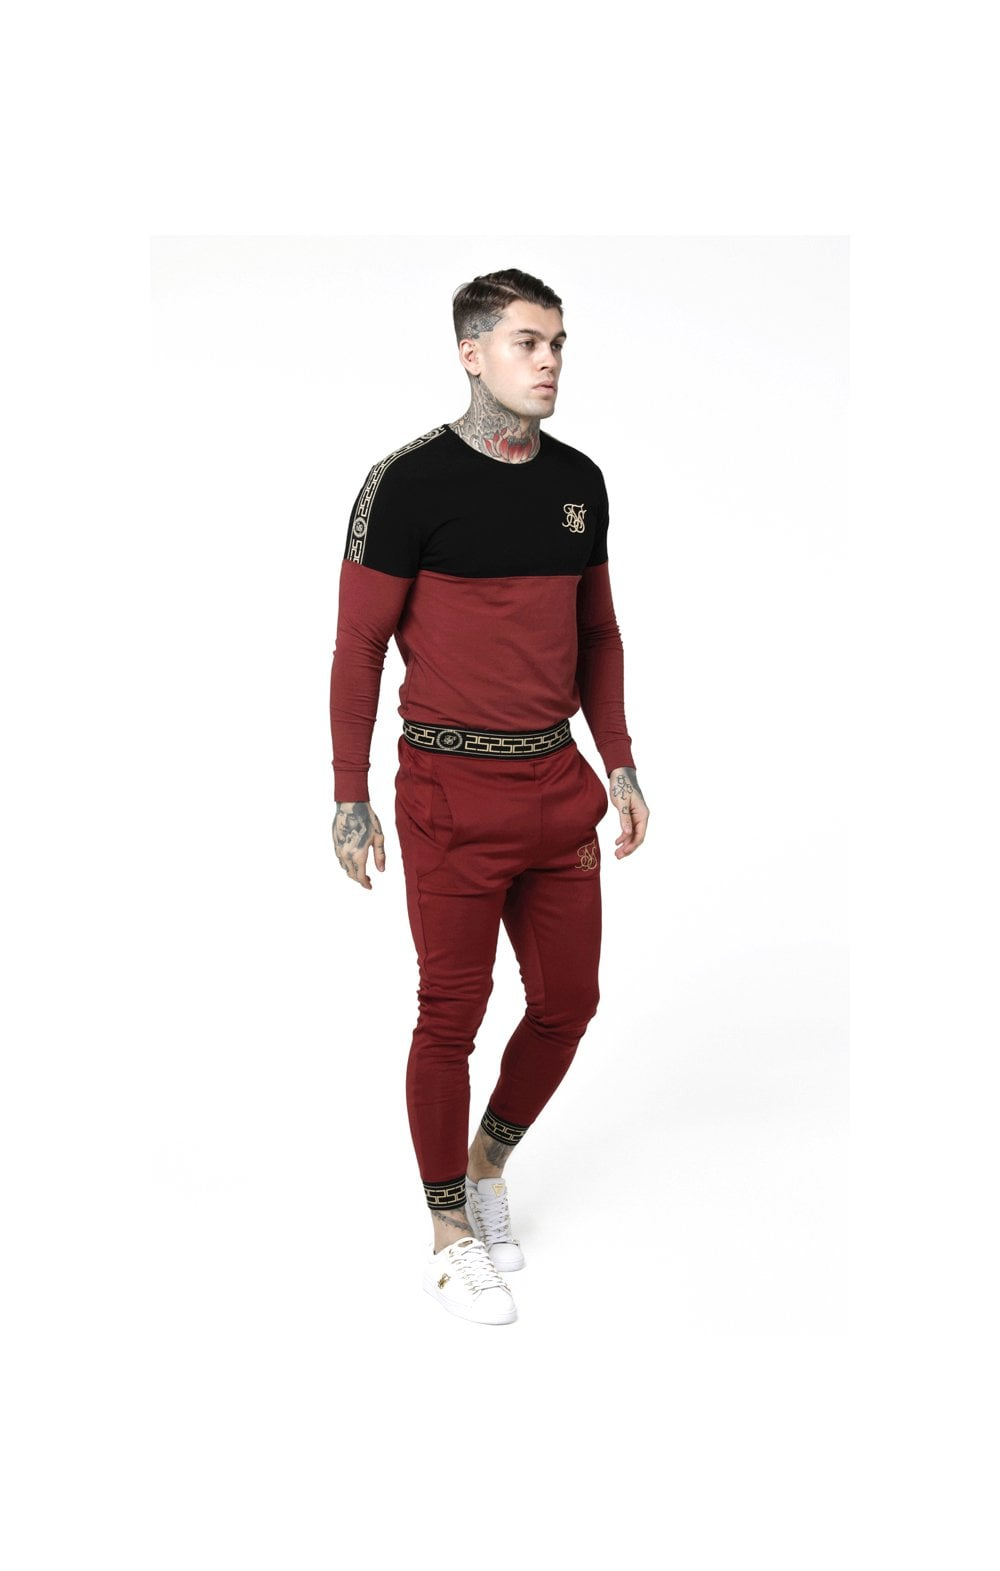 Load image into Gallery viewer, SikSilk L/S Cartel Cut & Sew Half Tape Gym Tee - Black & Red (2)